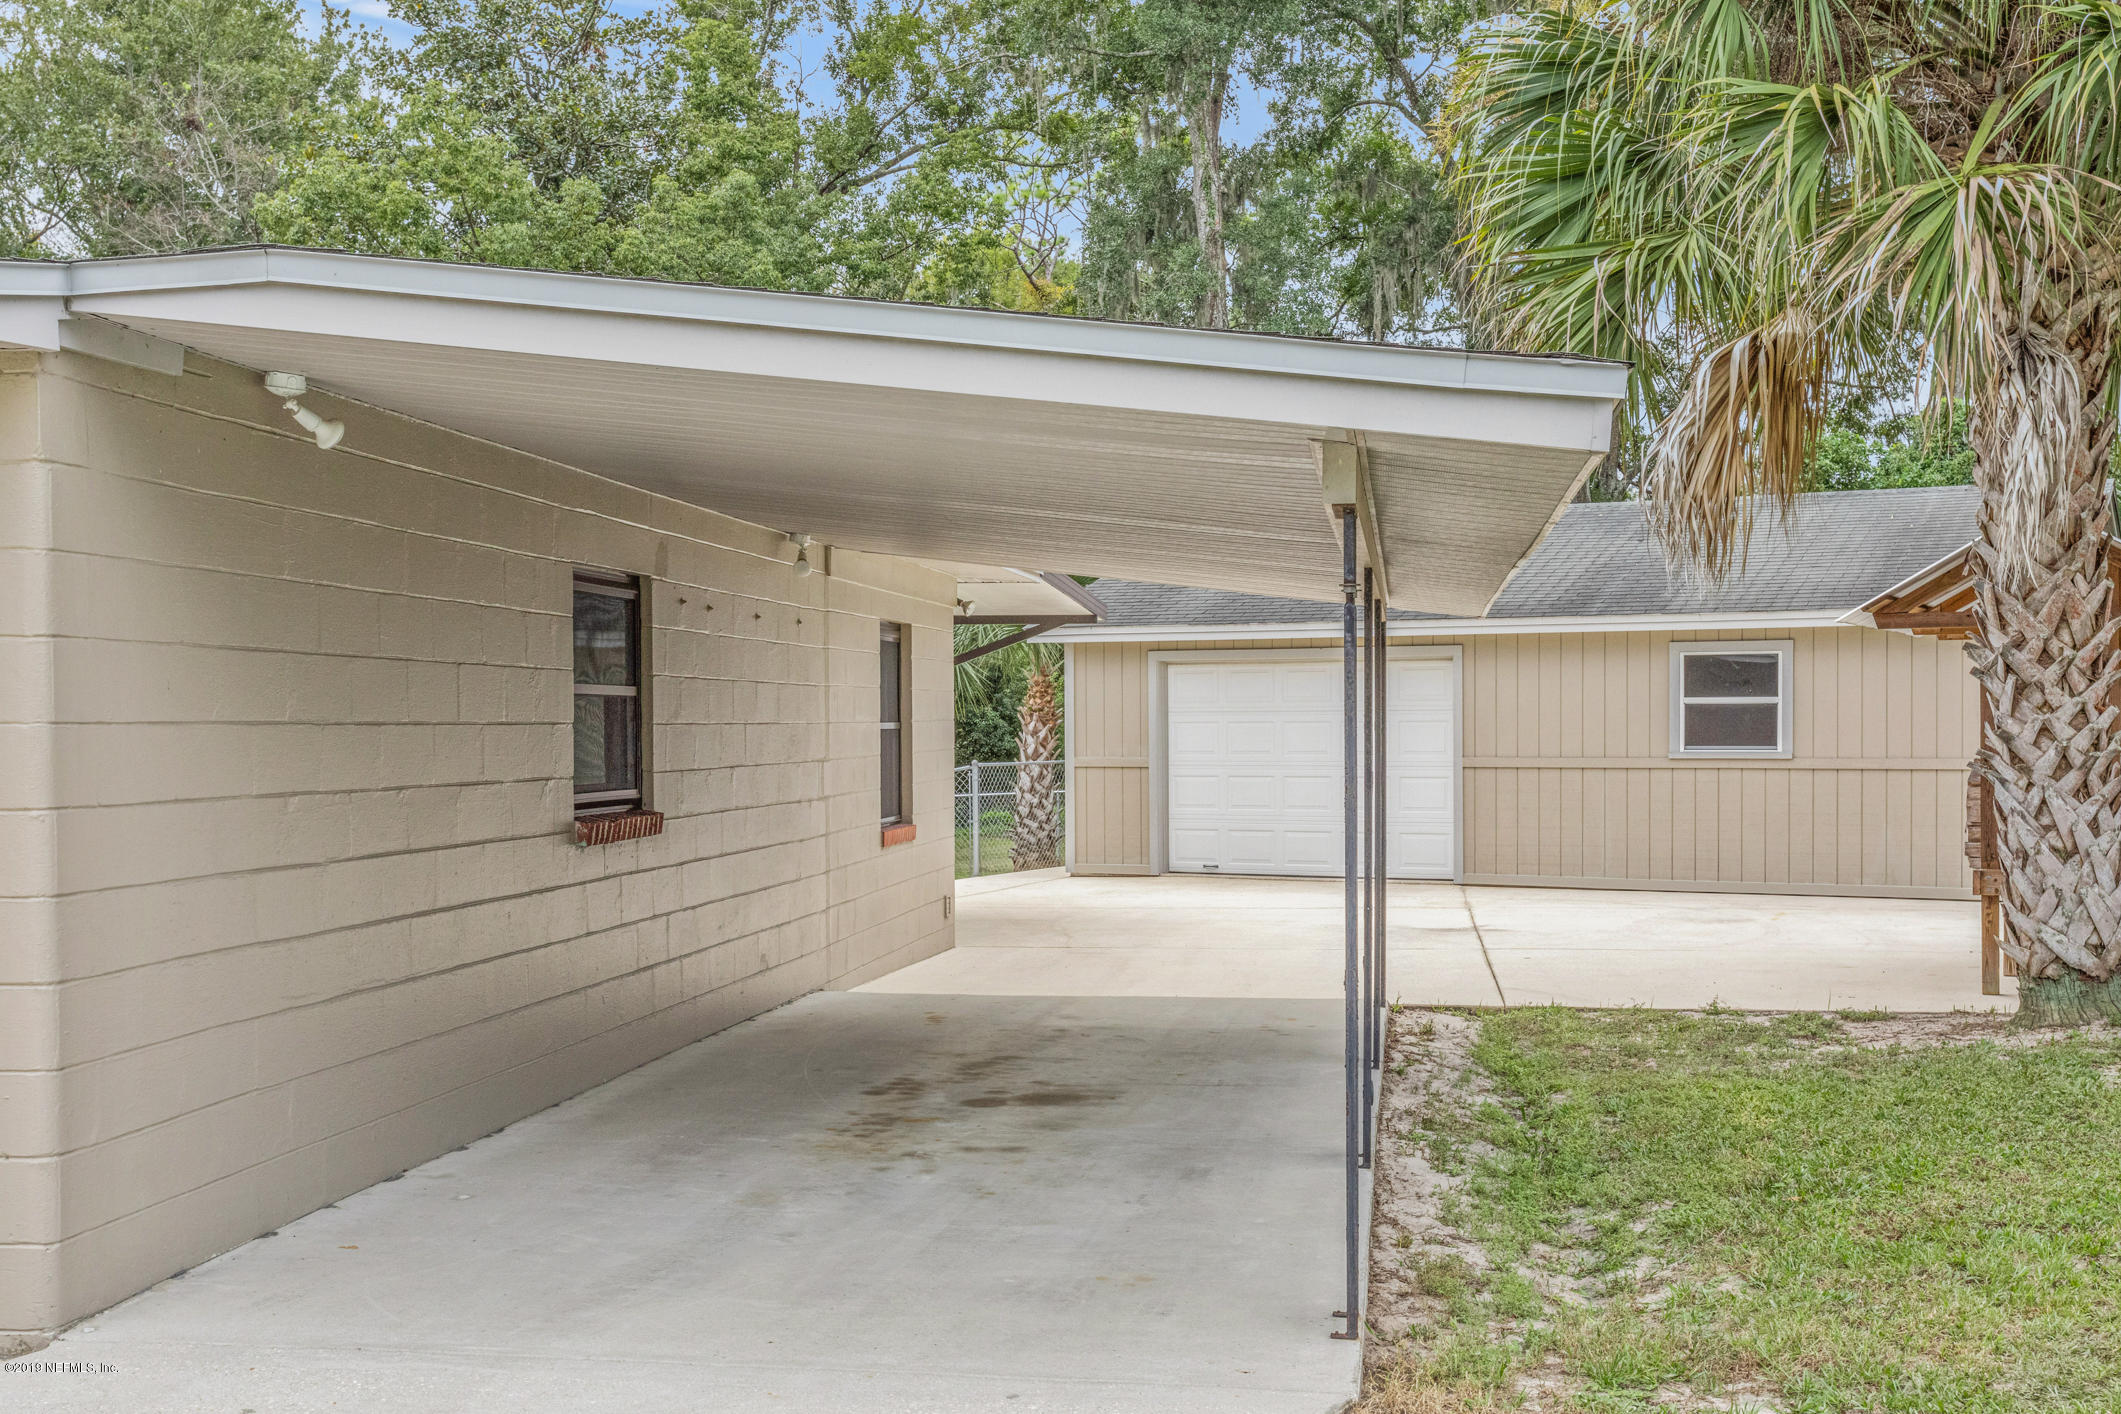 5702 CEDAR FOREST, JACKSONVILLE, FLORIDA 32210, 3 Bedrooms Bedrooms, ,1 BathroomBathrooms,Residential - single family,For sale,CEDAR FOREST,1021665